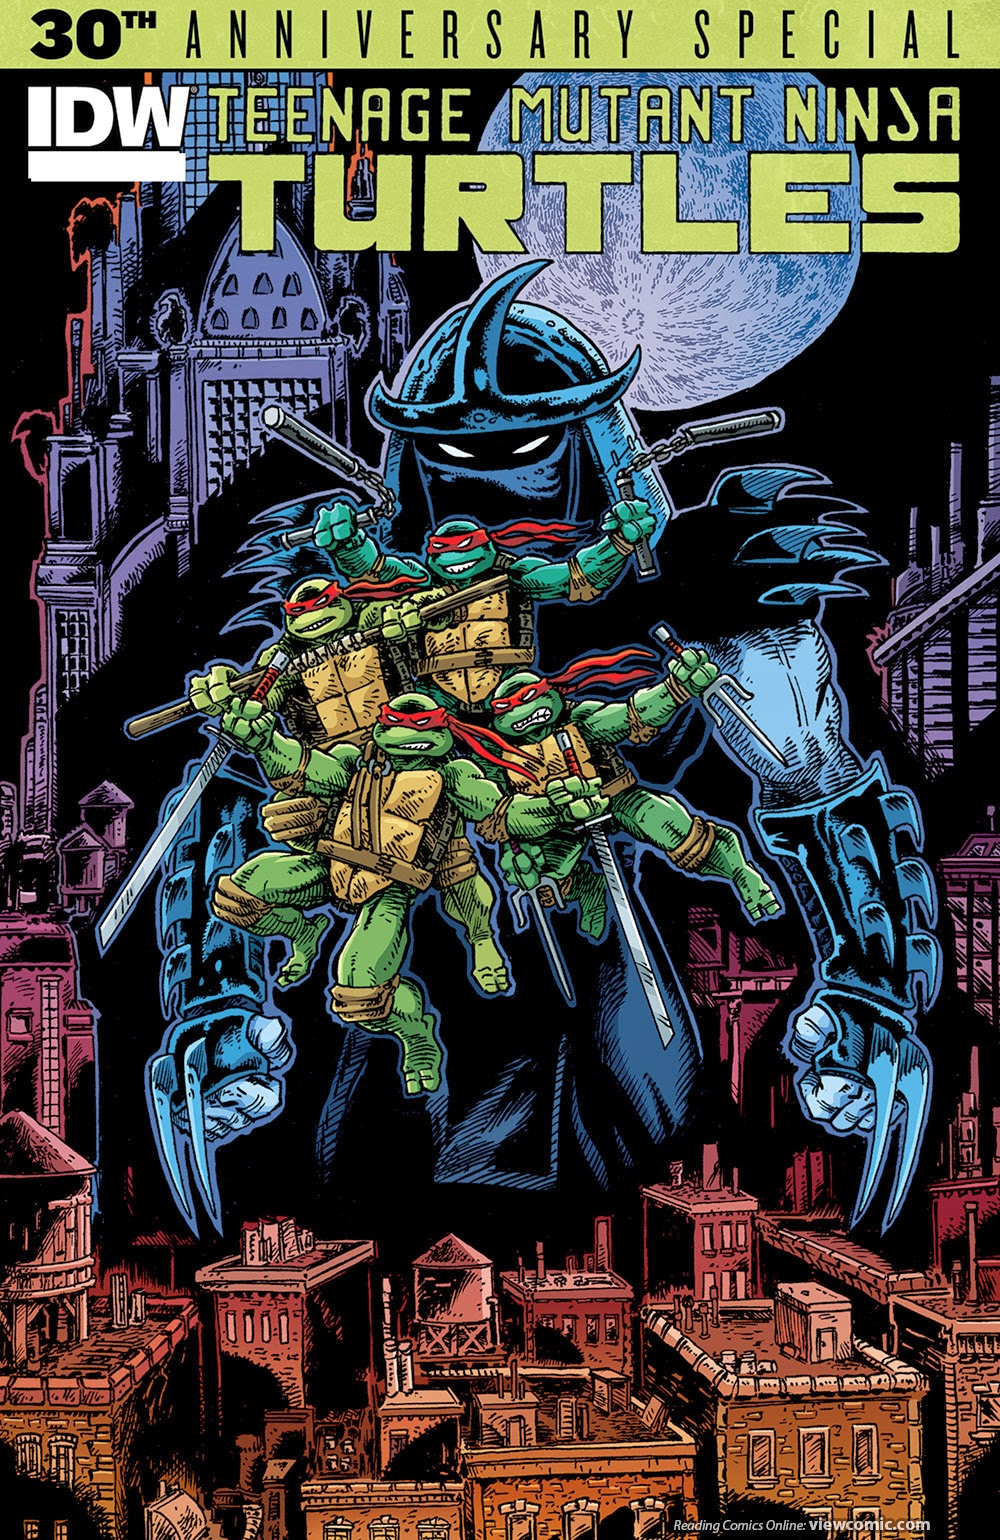 teenage mutant ninja turtles viewcomic reading comics online for